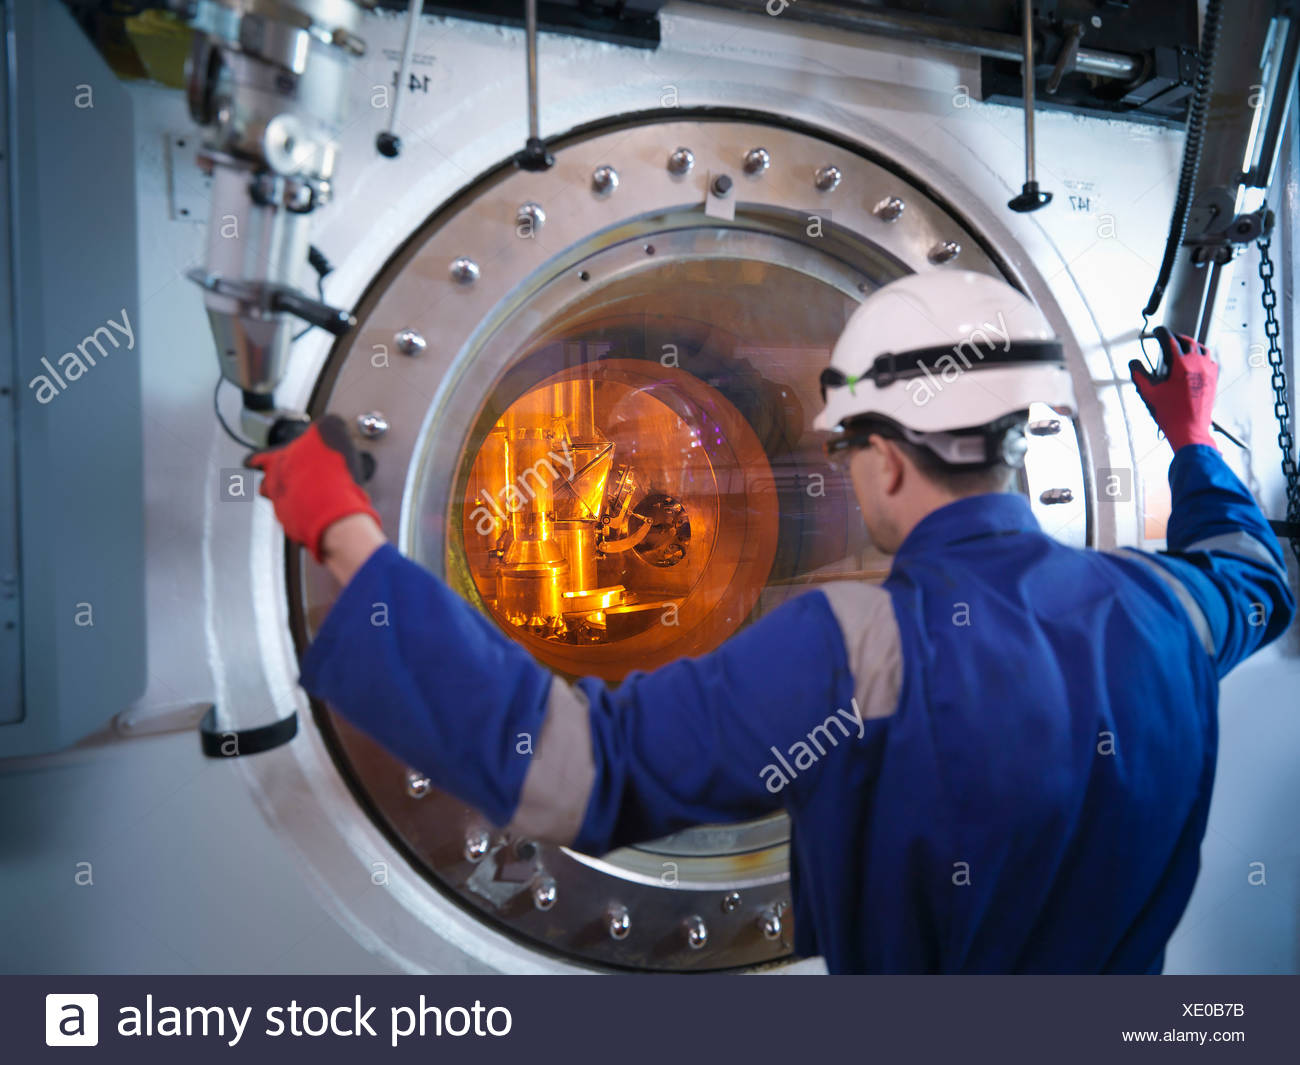 Engineer with fuel rod handling machine in nuclear power station - Stock Image